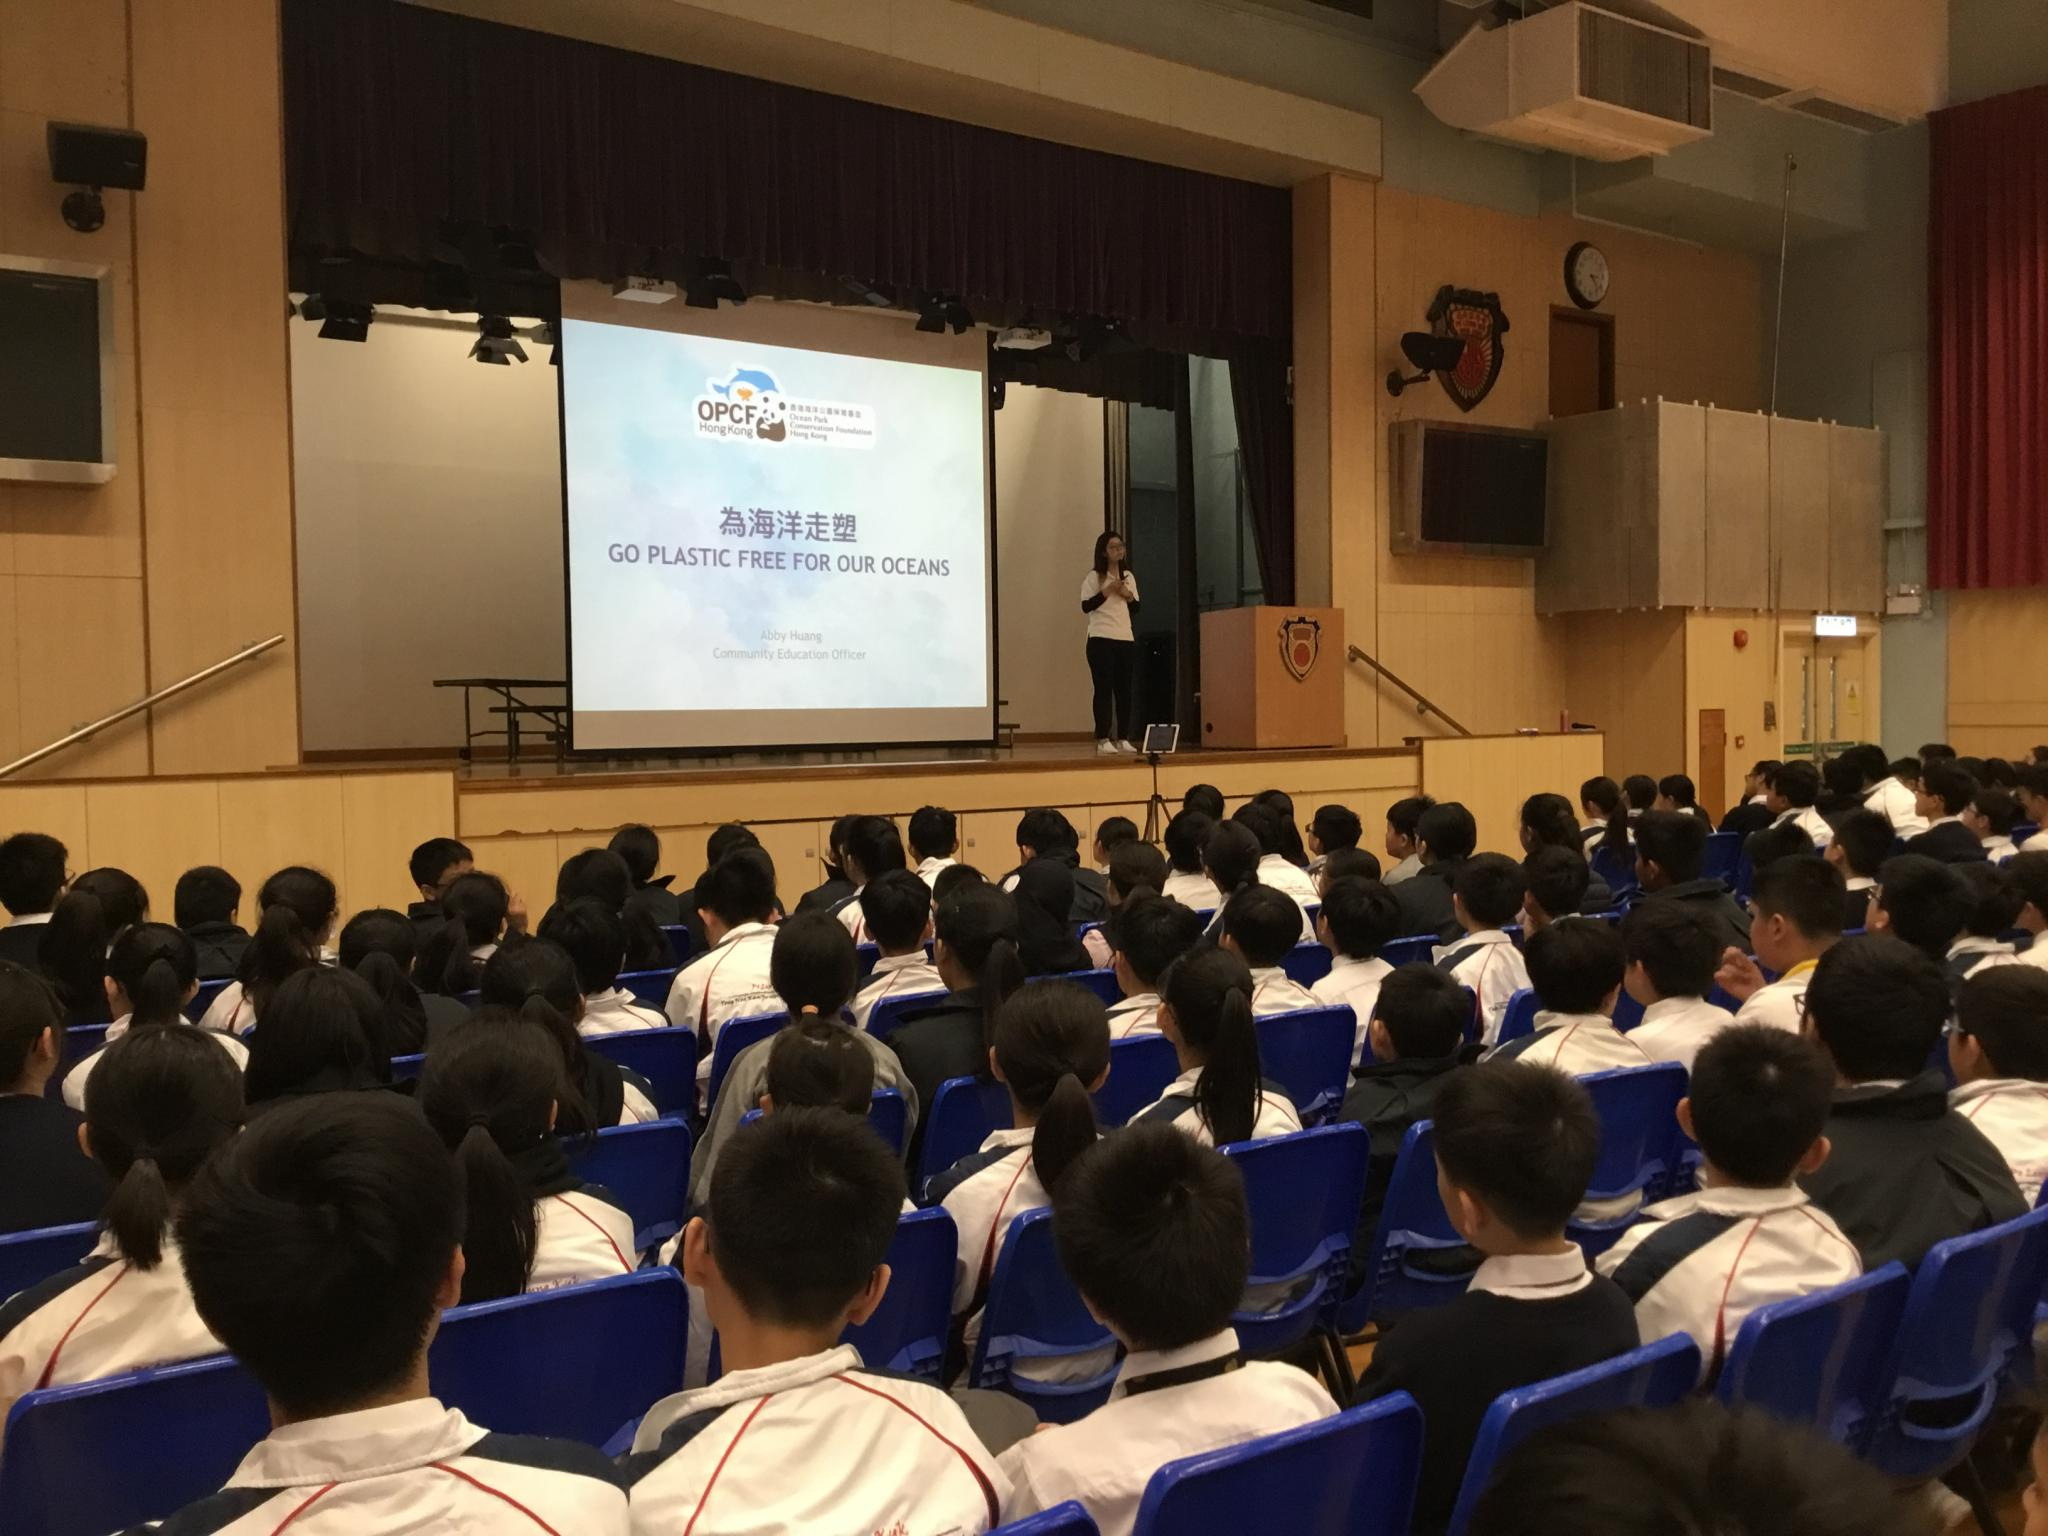 The whole school students need to attend the talk to get equipped with more knowledge about environmental protection.